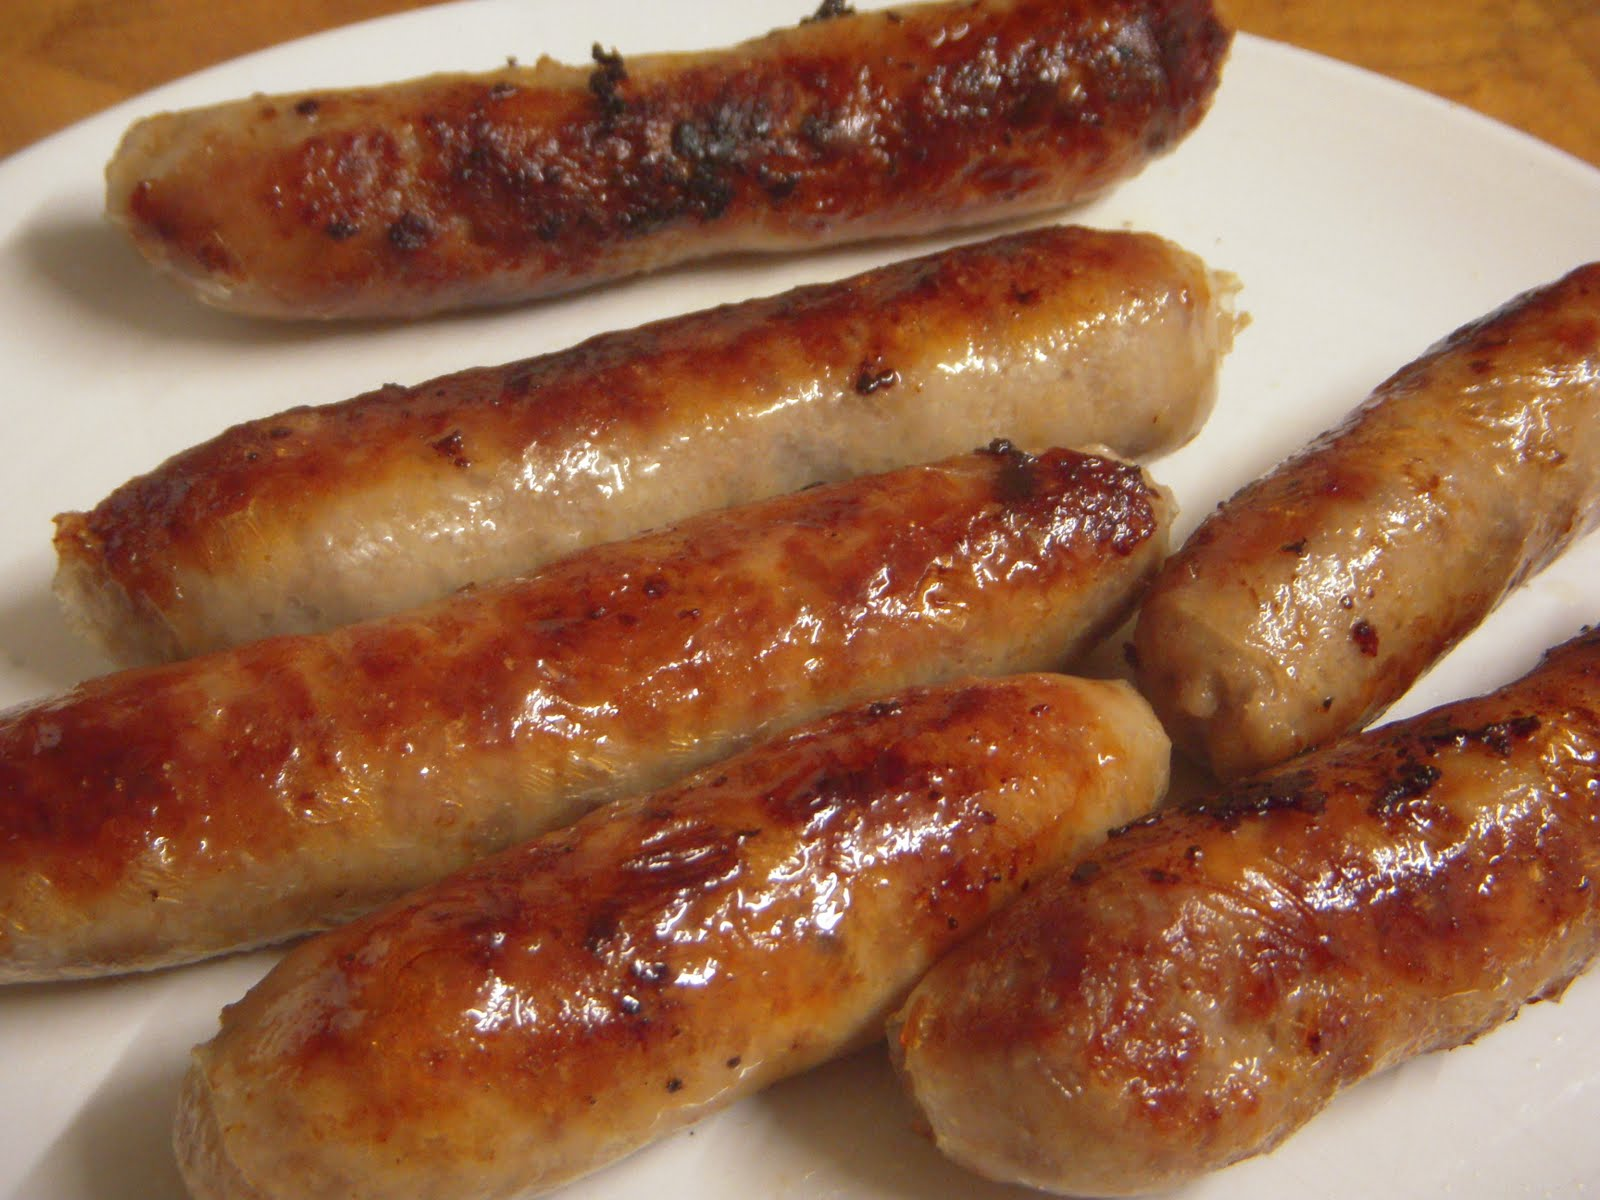 Rate My Sausage: John's of Downham Market - Pork Sausage